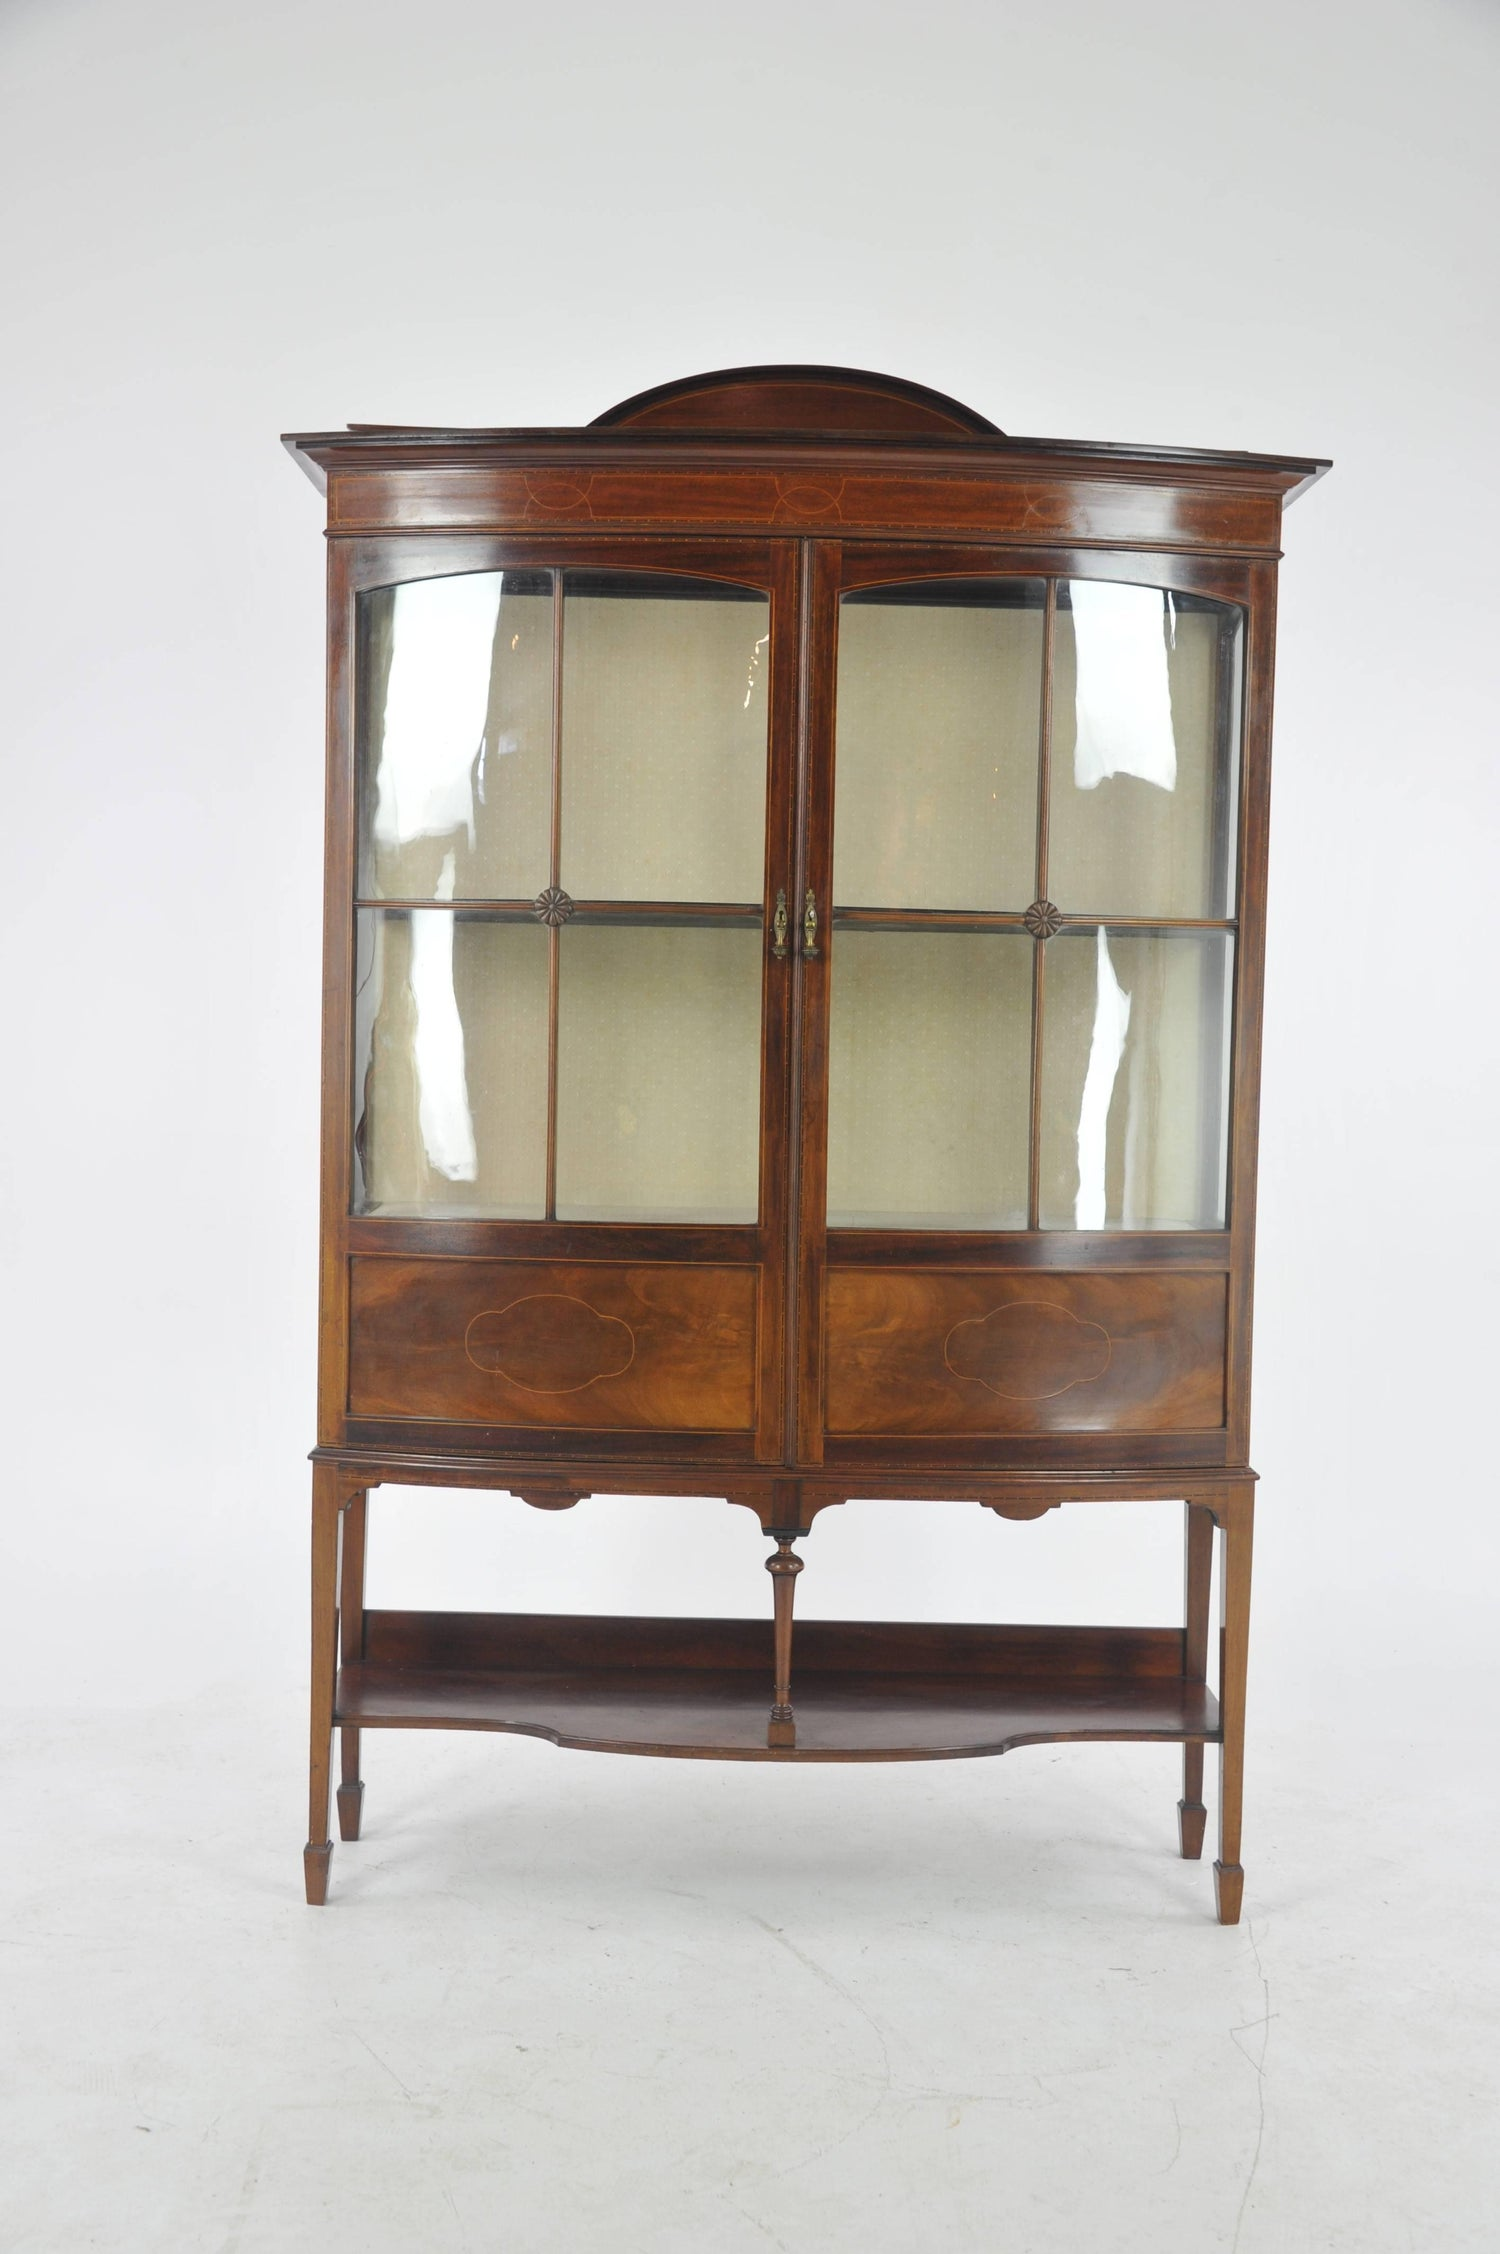 Antique China Cabinet, Inlaid Mahogany, Bow Front Cabinet, Scotland, 1910  For Sale at 1stdibs - Antique China Cabinet, Inlaid Mahogany, Bow Front Cabinet, Scotland